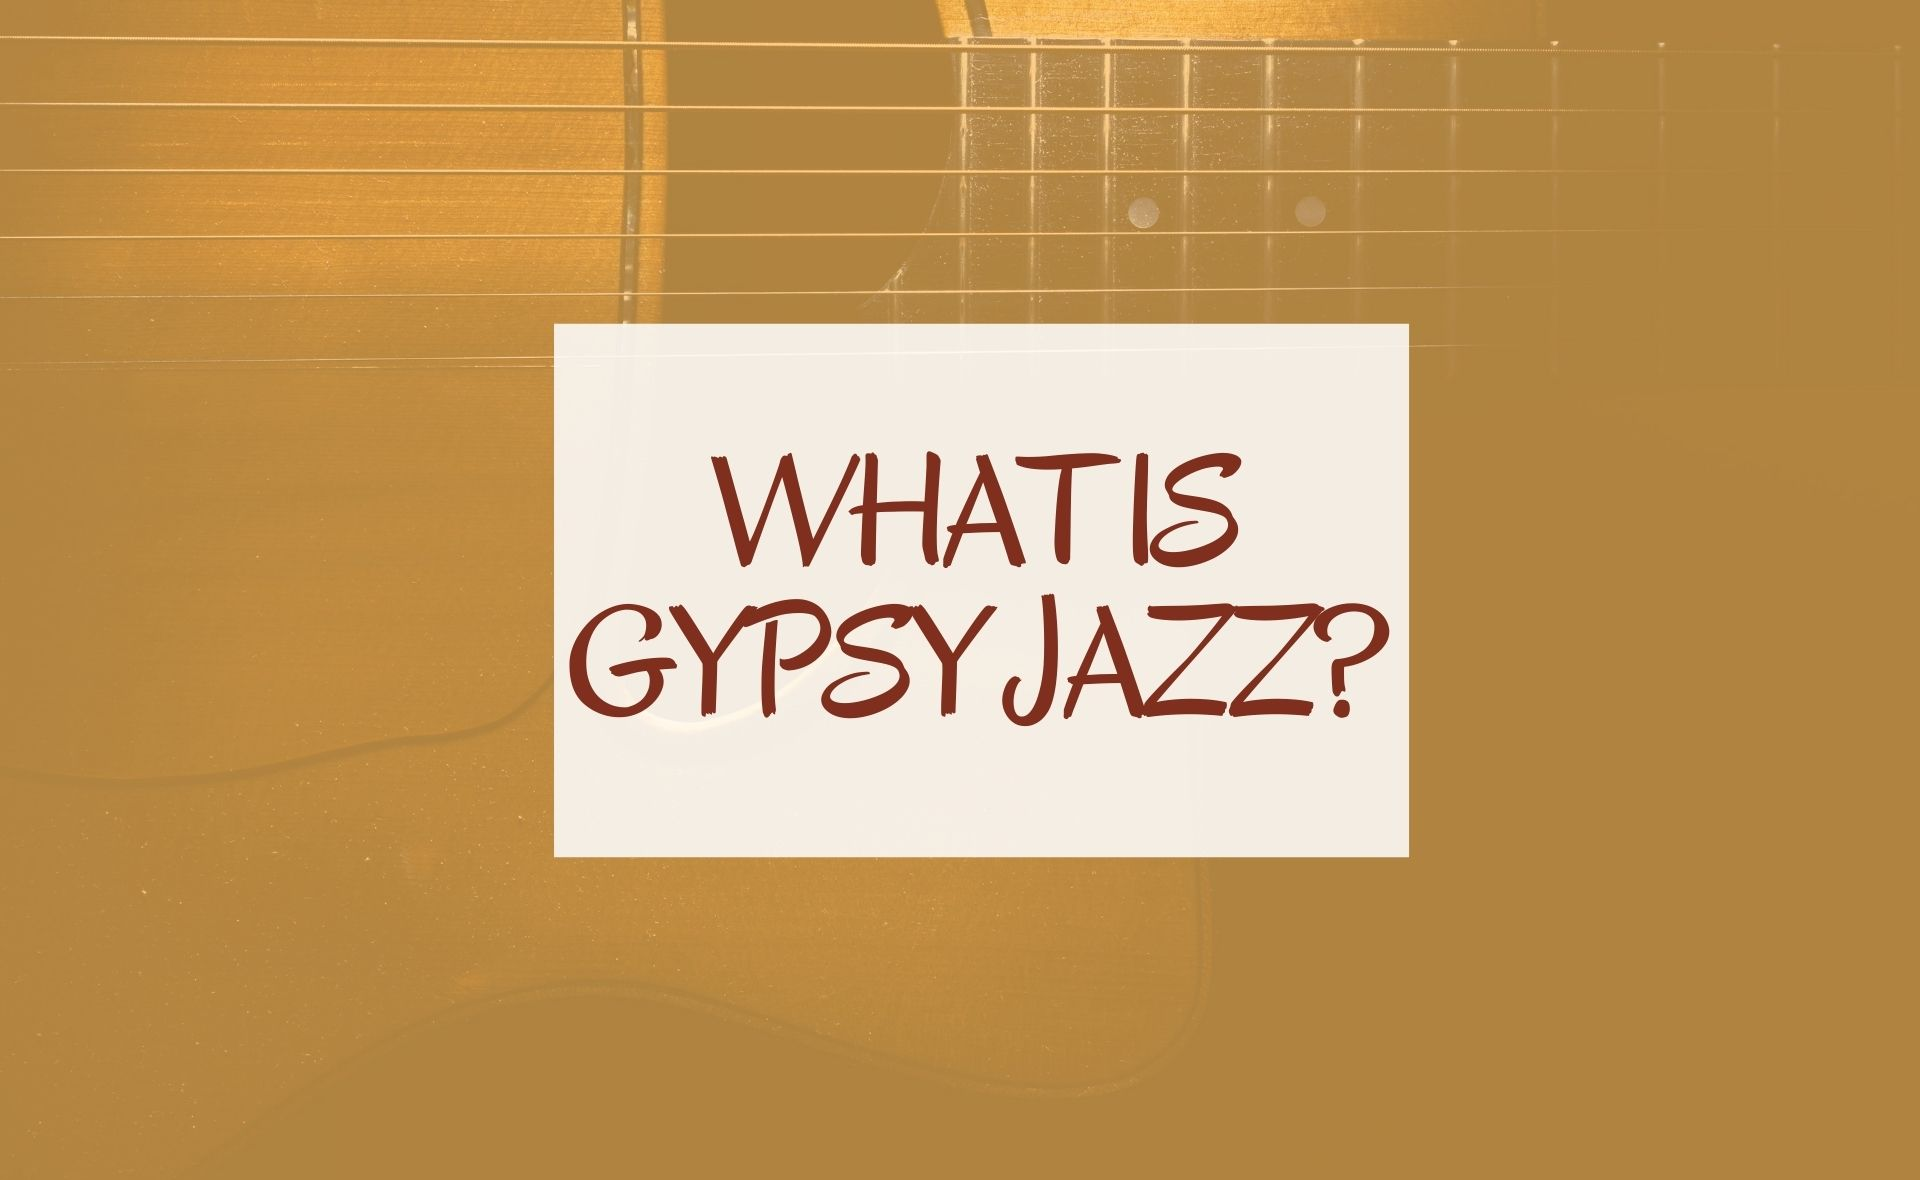 What is gypsy Jazz?